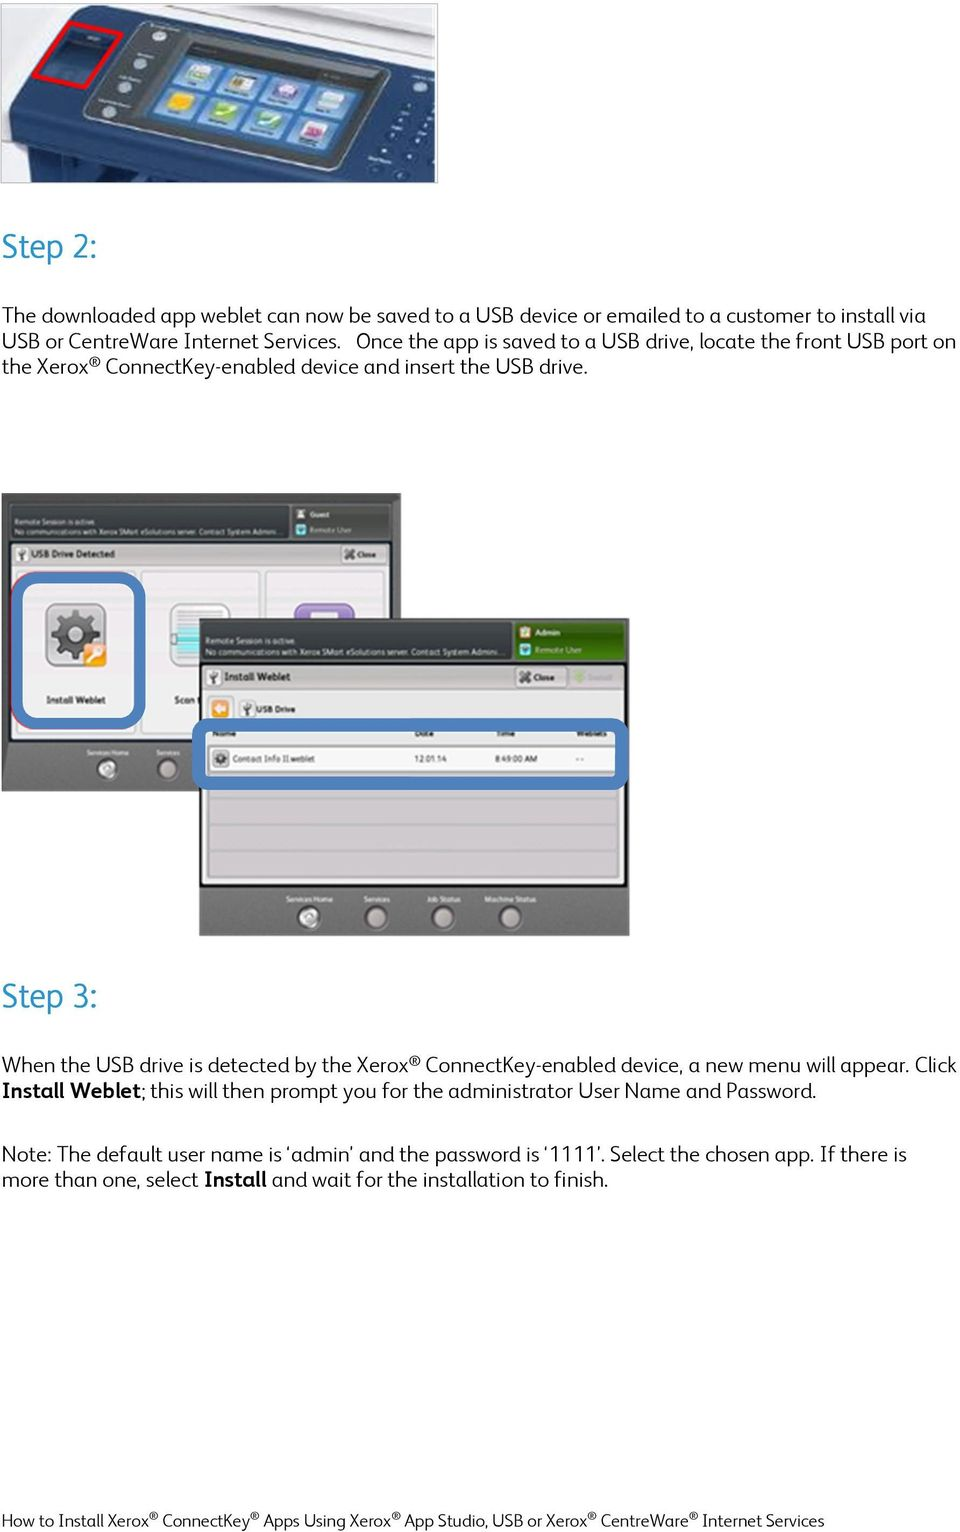 how to put apps on a usb drive